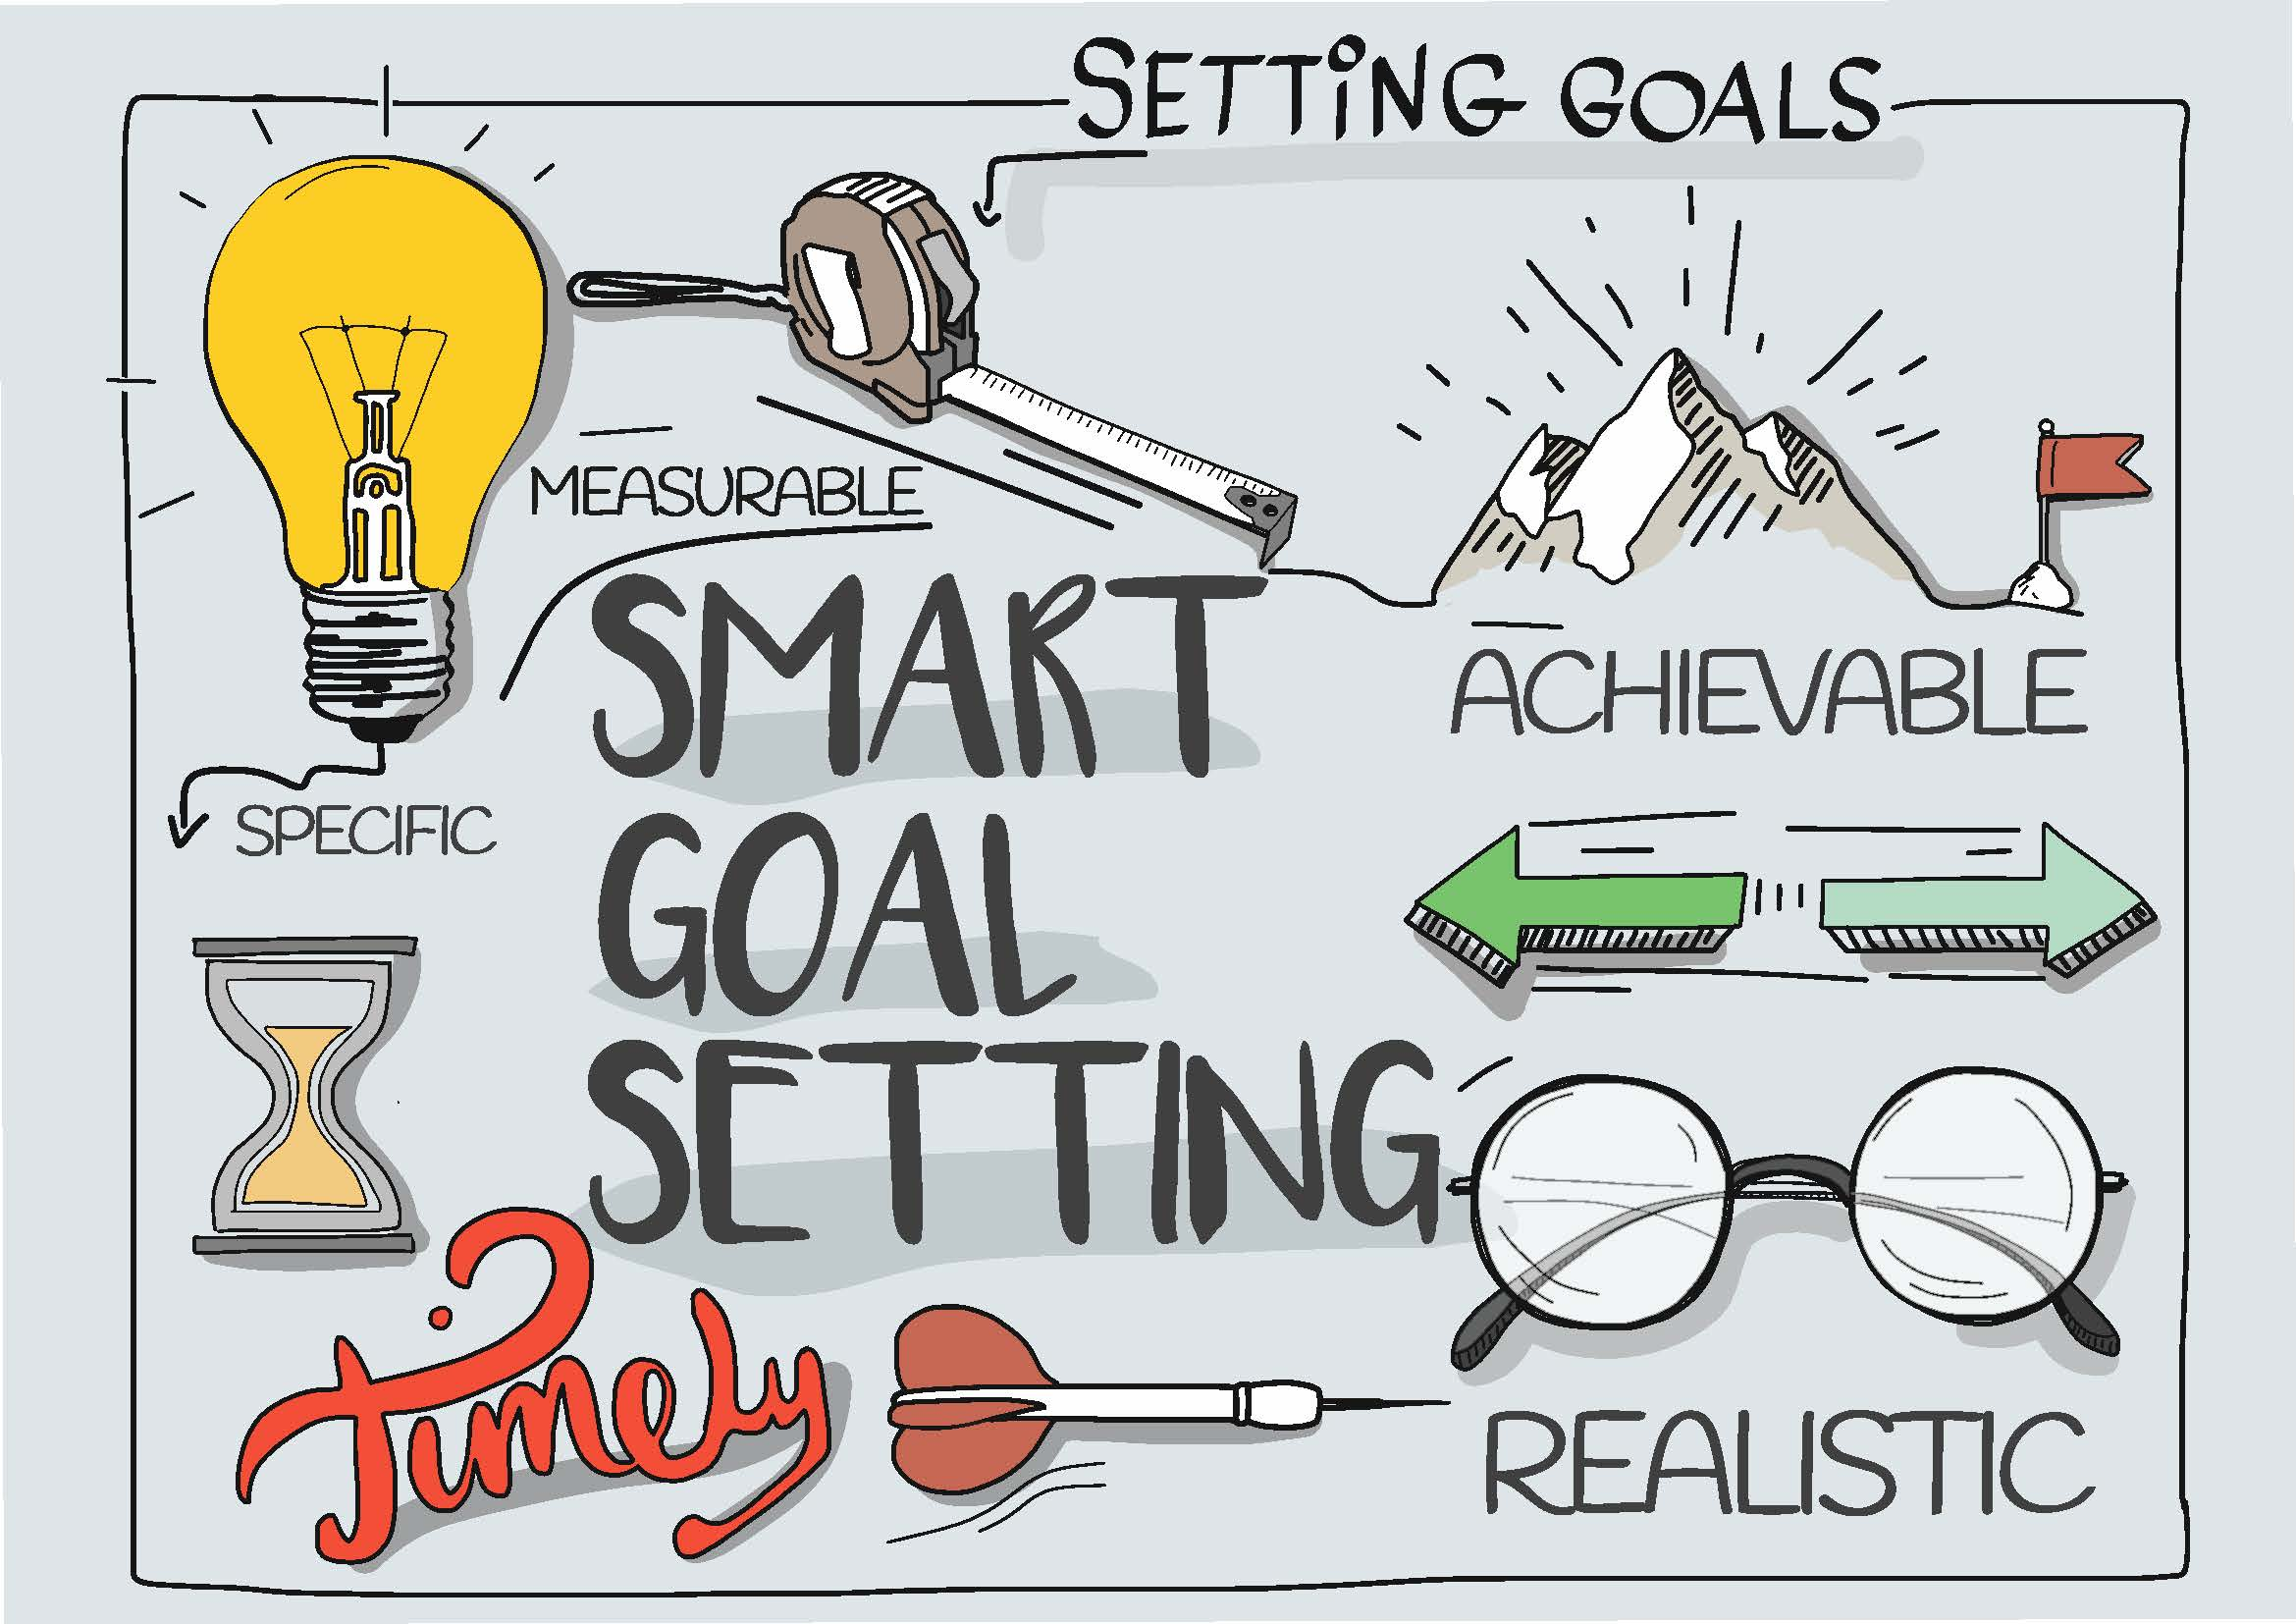 Creating S.M.A.R.T. Goals for Your New Year's Resolutions